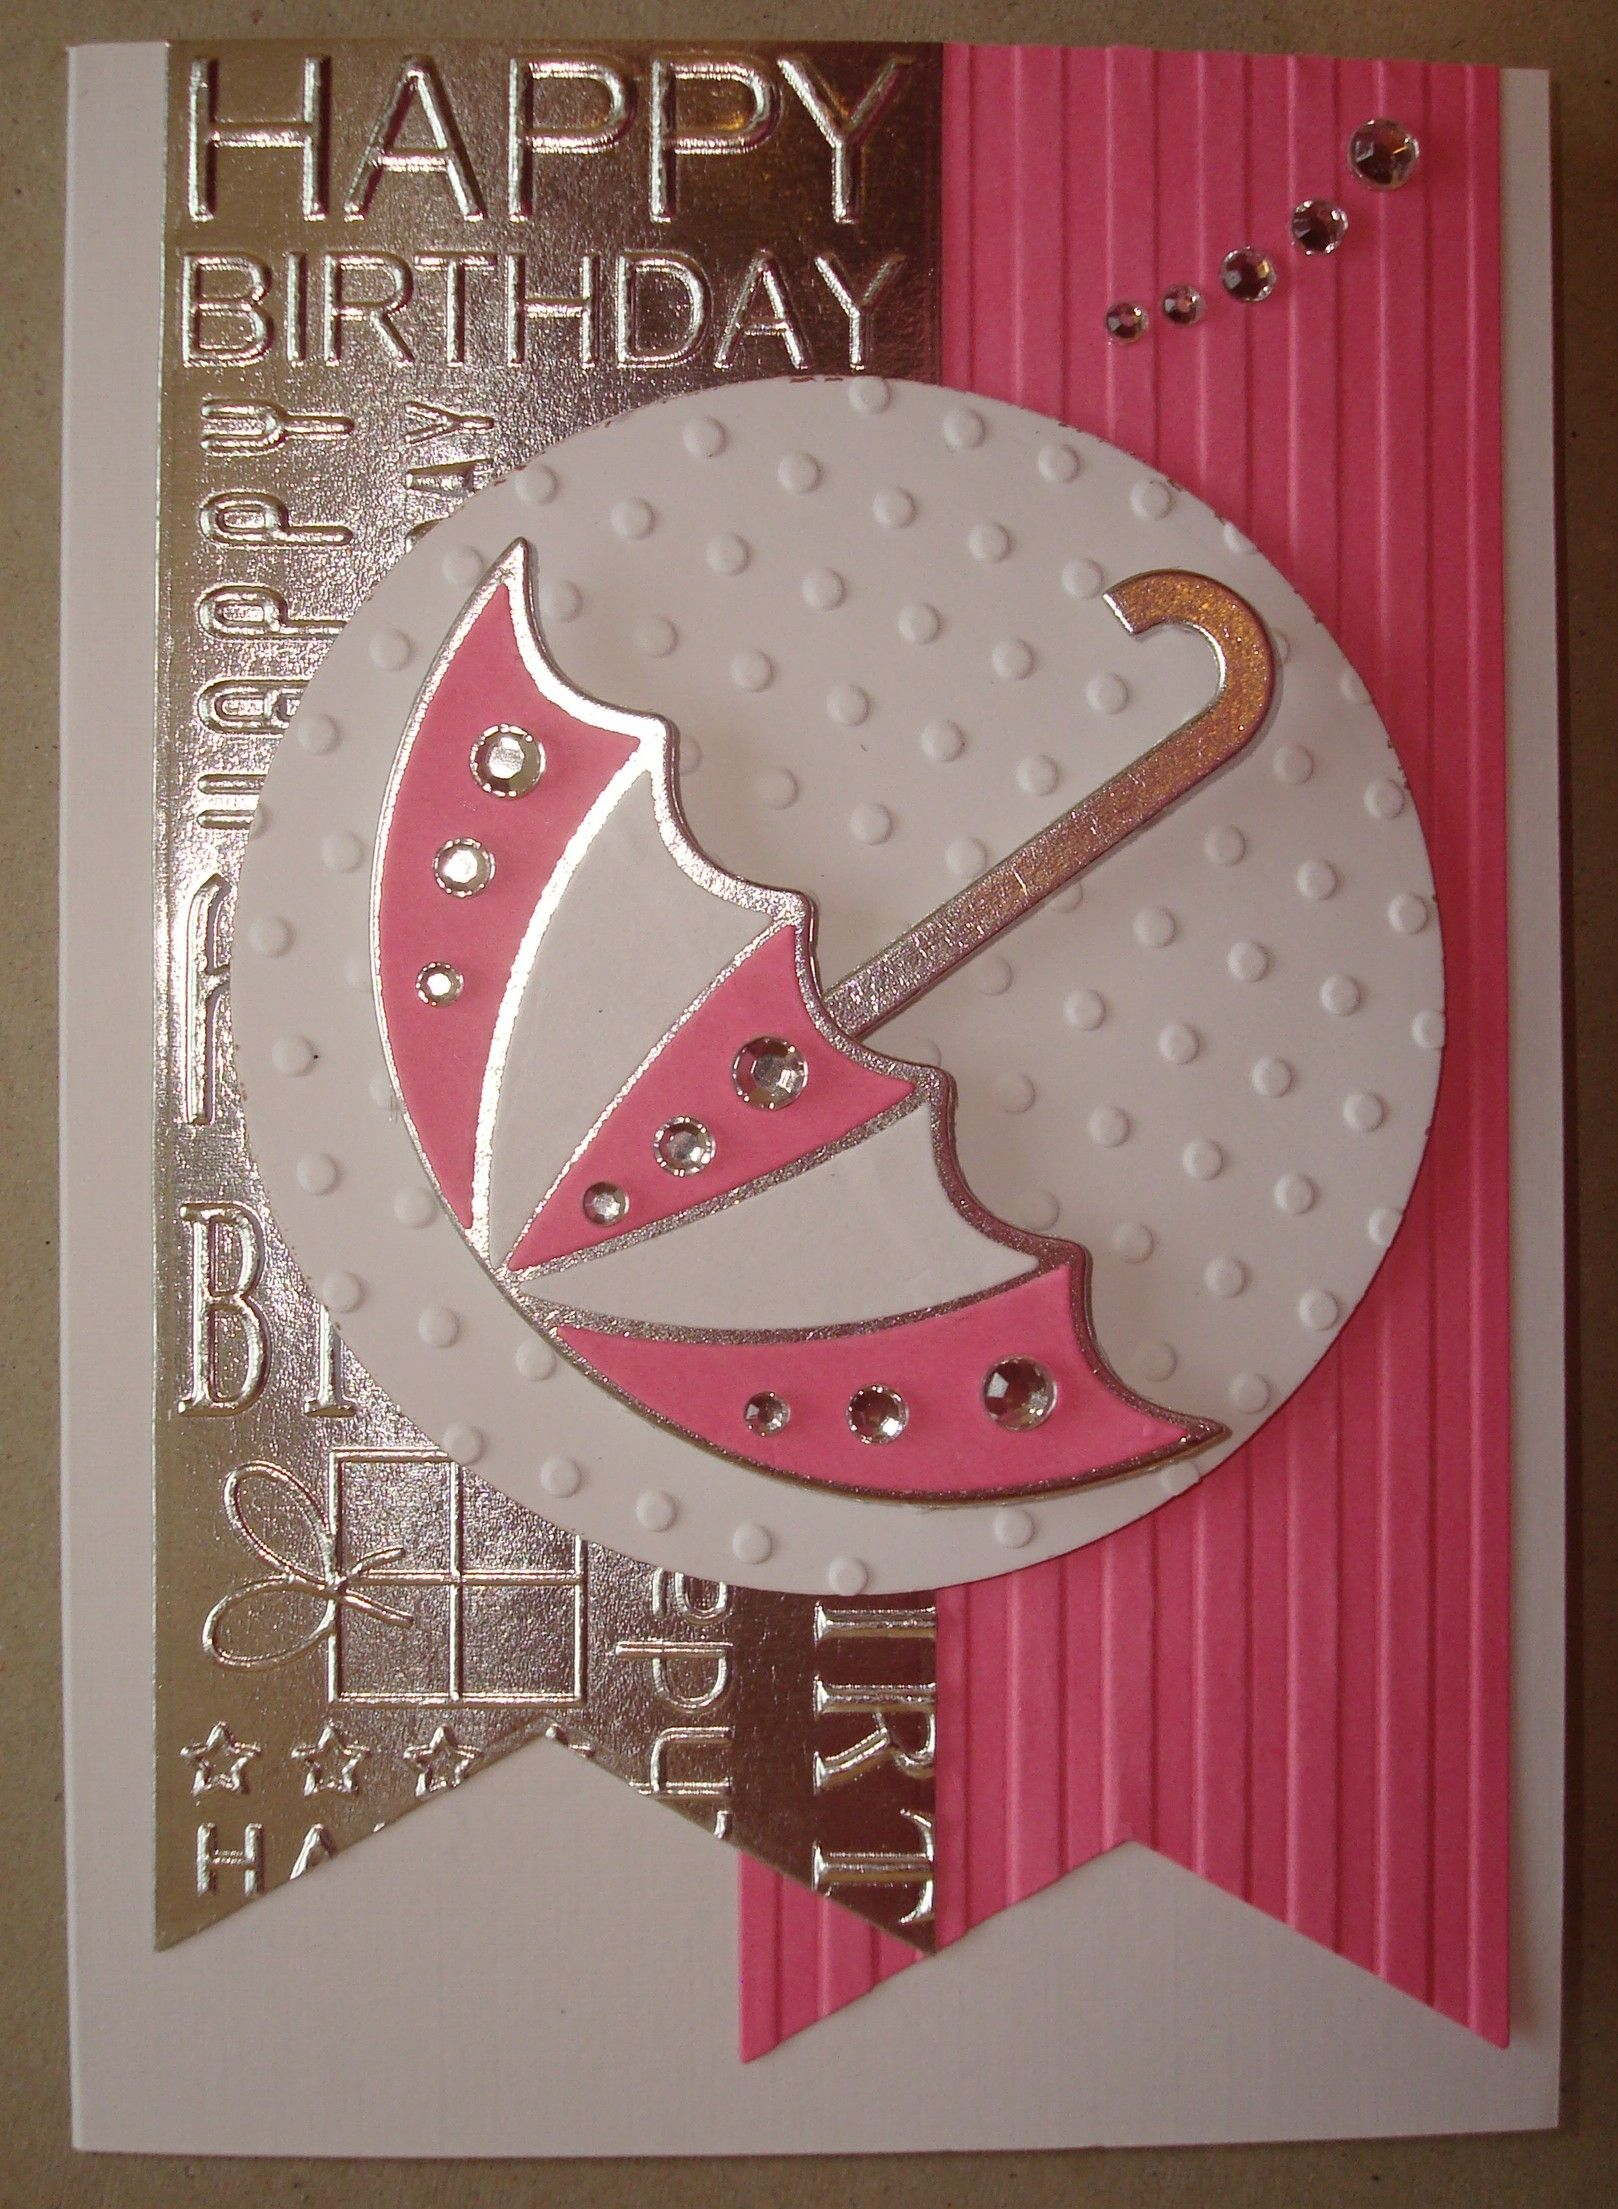 Pin by Gerry Brow on Cards  Umbrella cards, Pinterest birthday